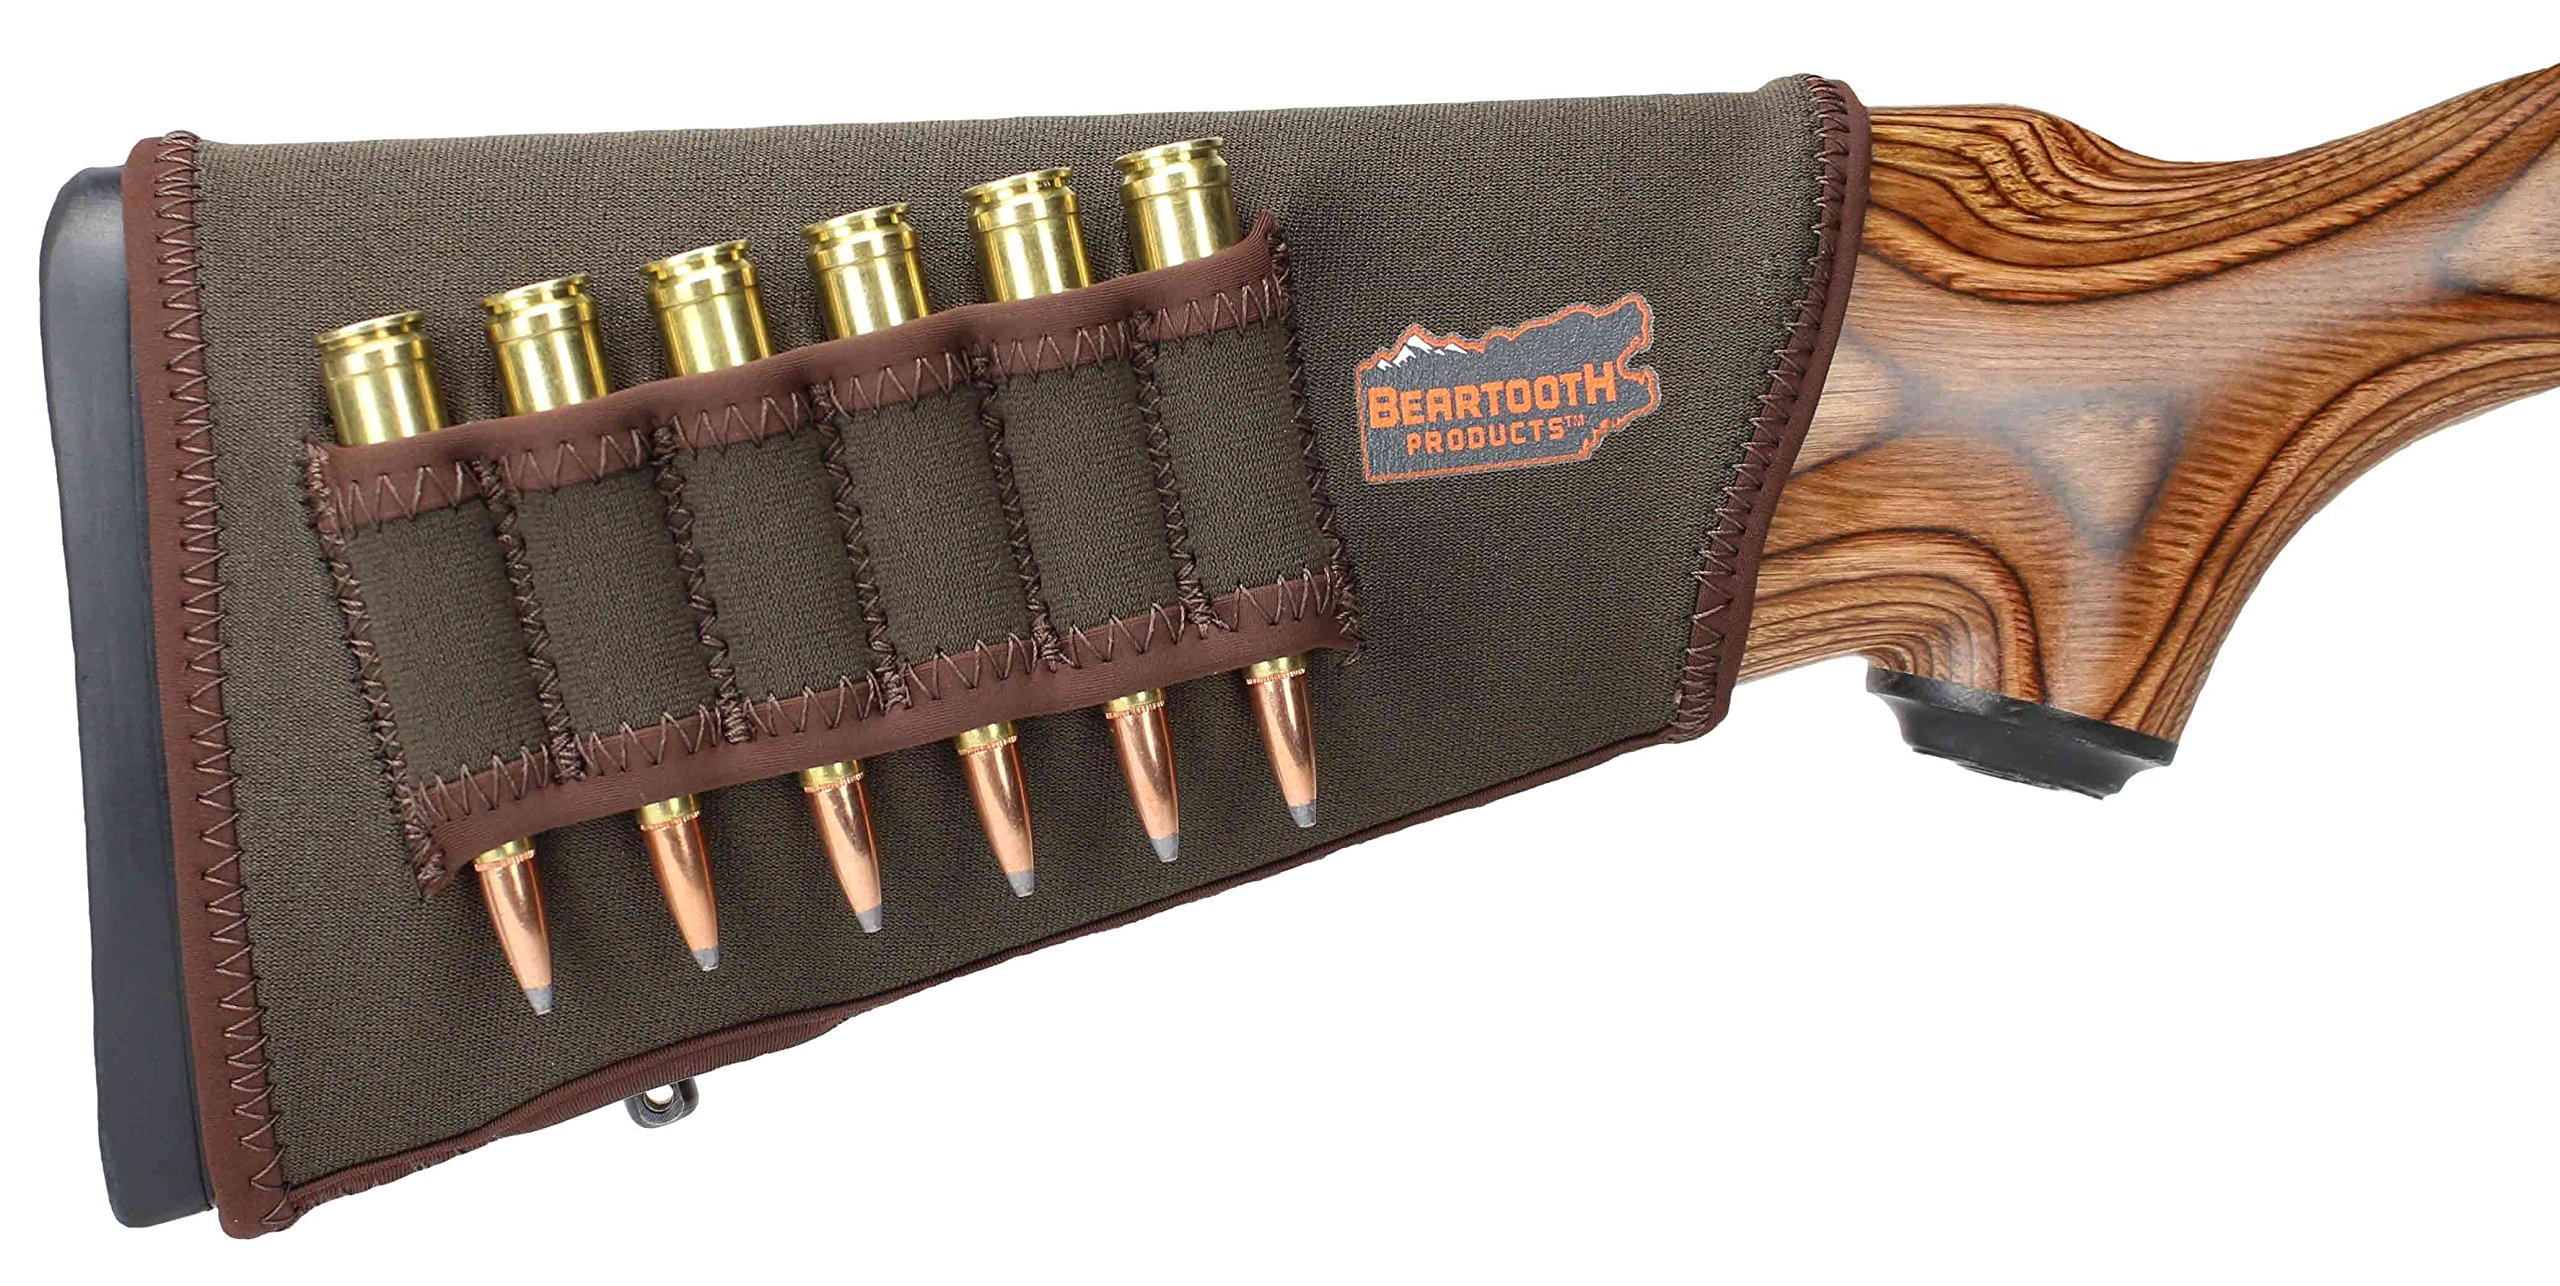 Beartooth StockGuard 2.0 - Premium Neoprene Gun Stock Cover - Rifle Model (Brown) by Beartooth Products